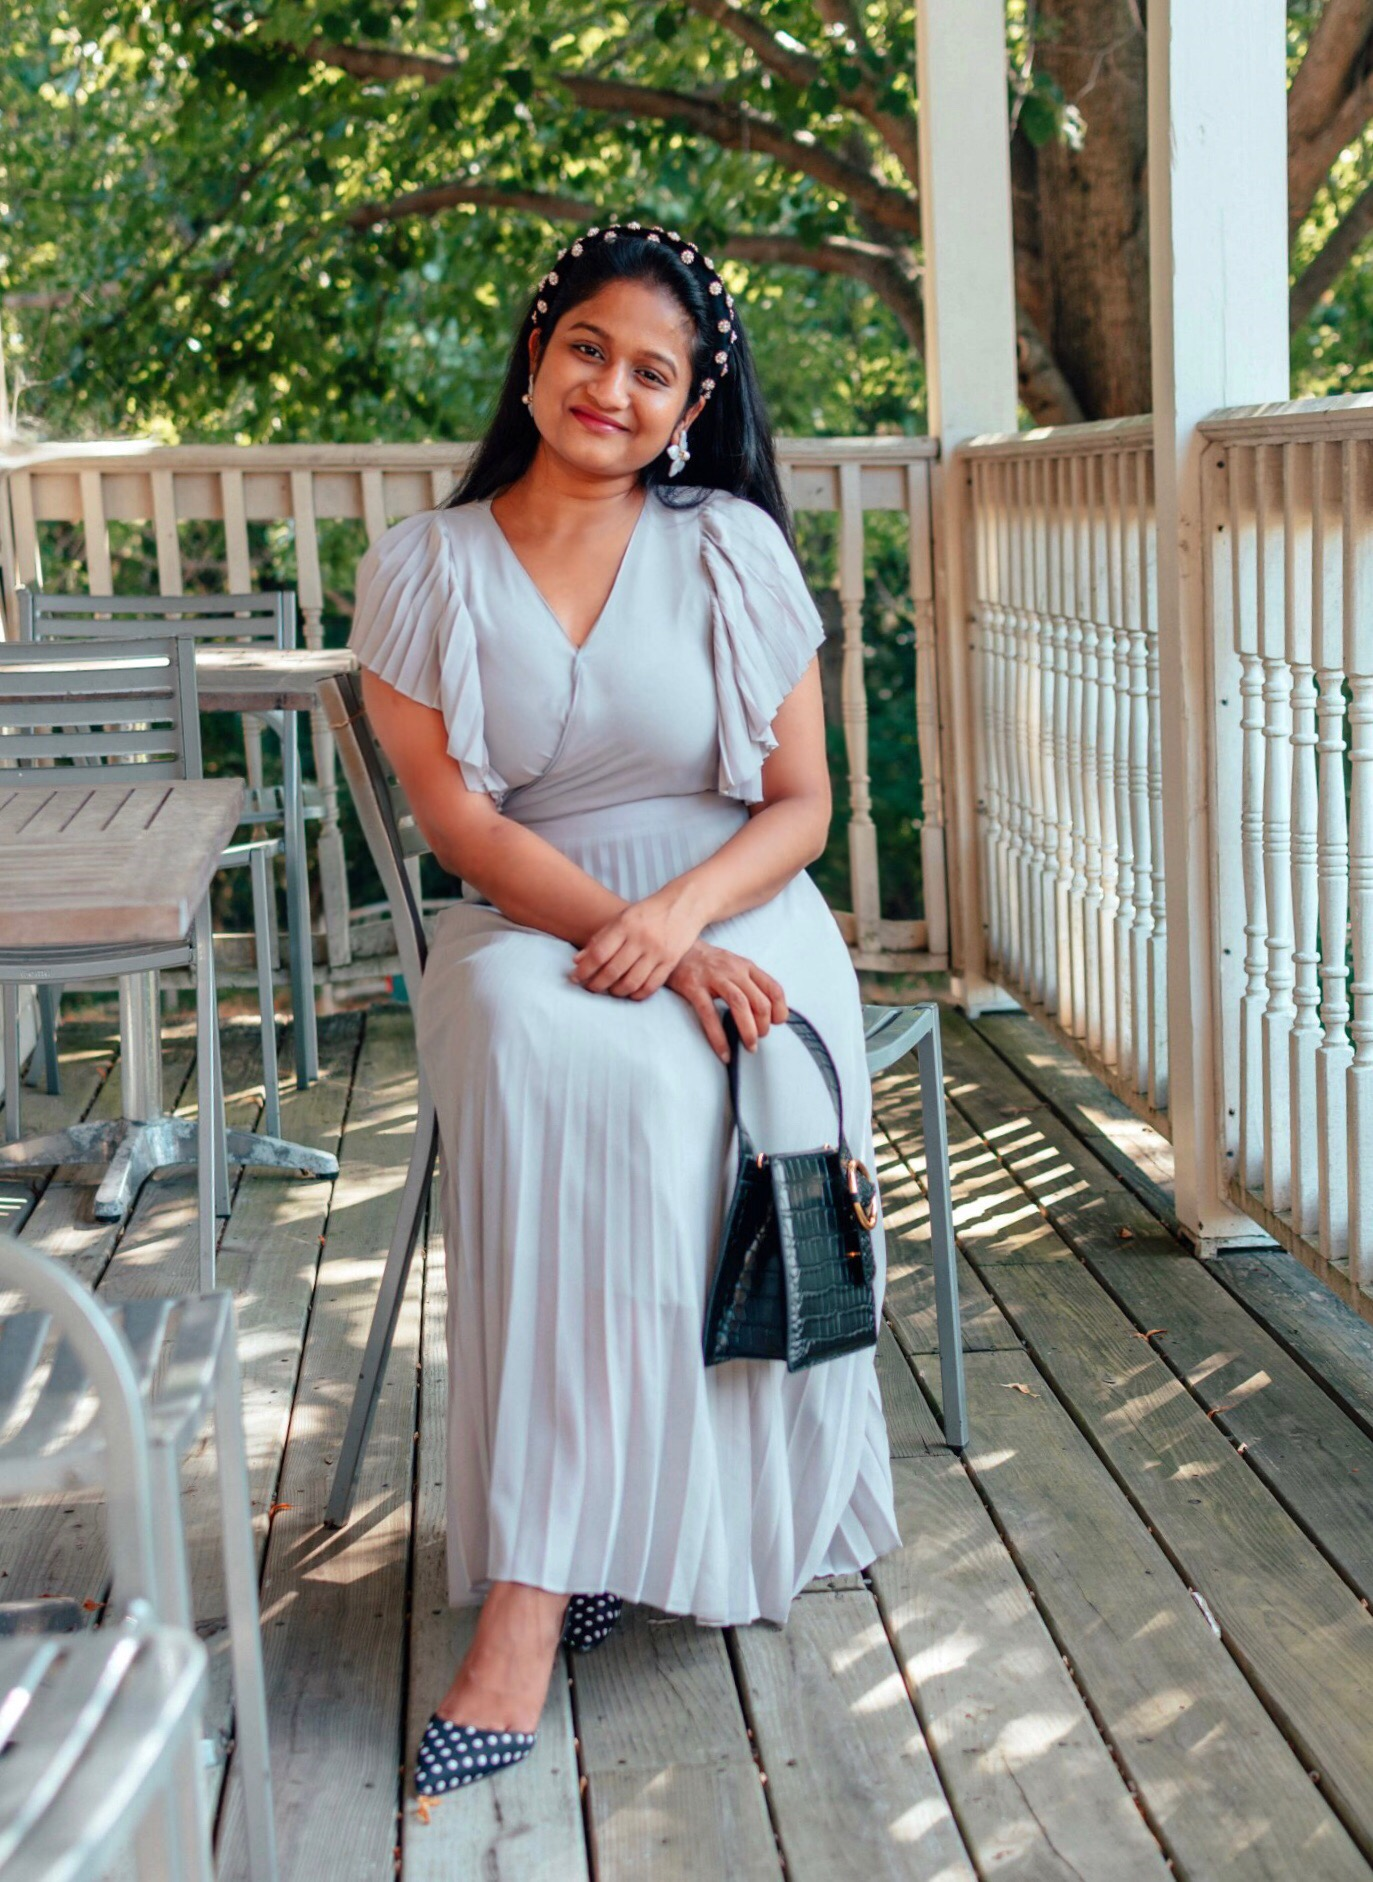 Wearing Ivy City co pleated dress in lilac, Parisa Wang Enchanted Top handle Bag, Pearl headband.6